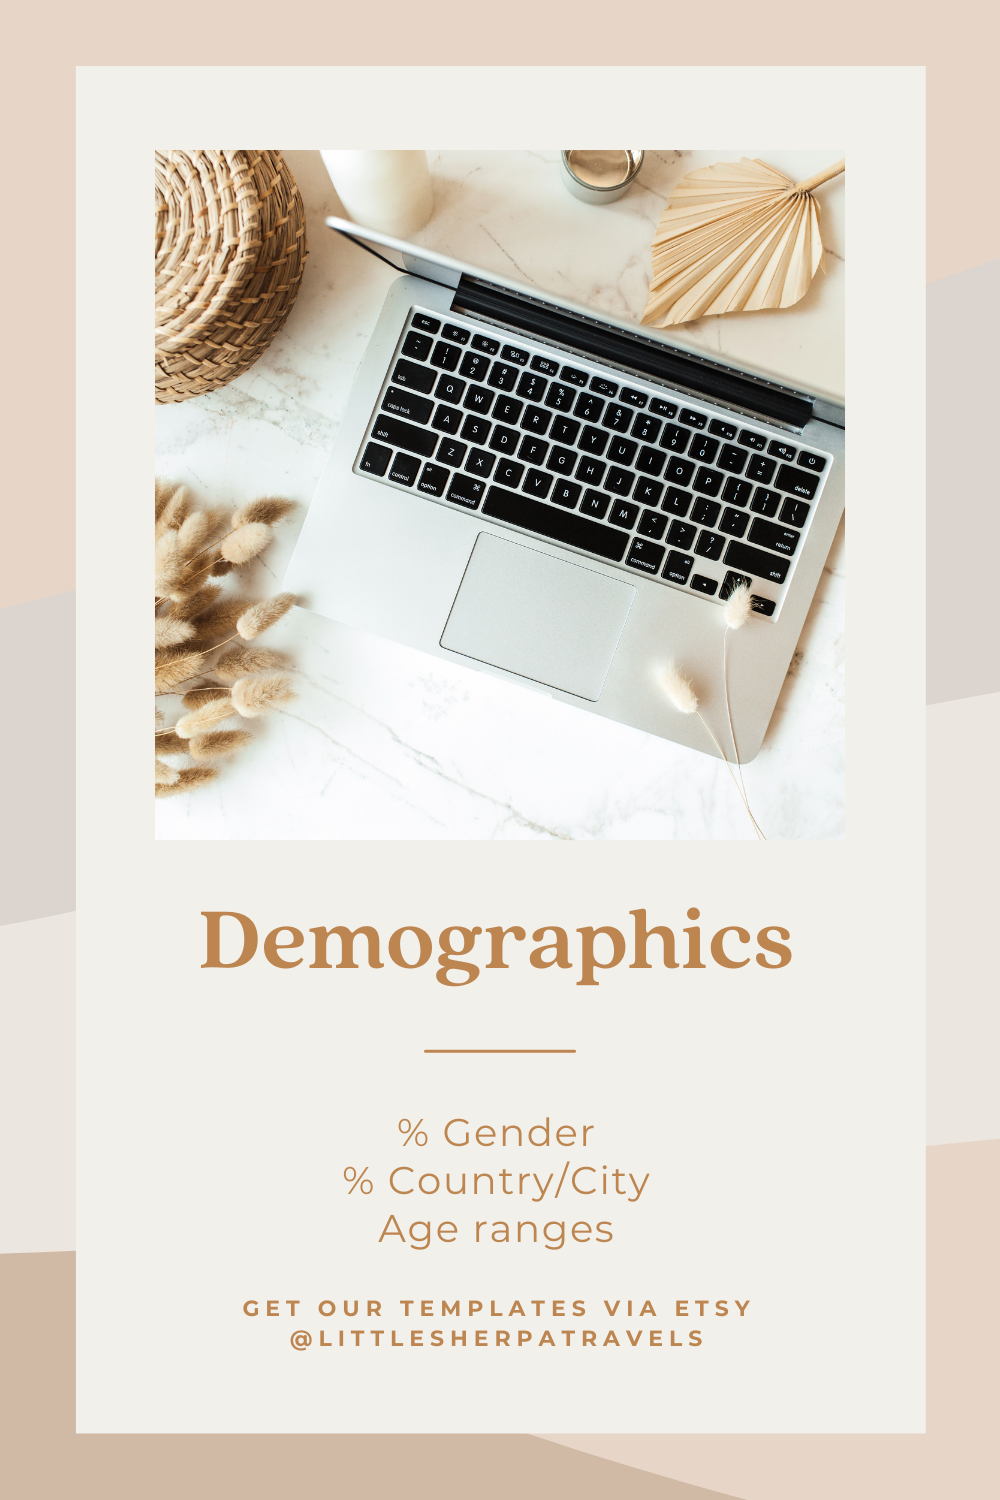 Audience Demographics to include in your Media Kit